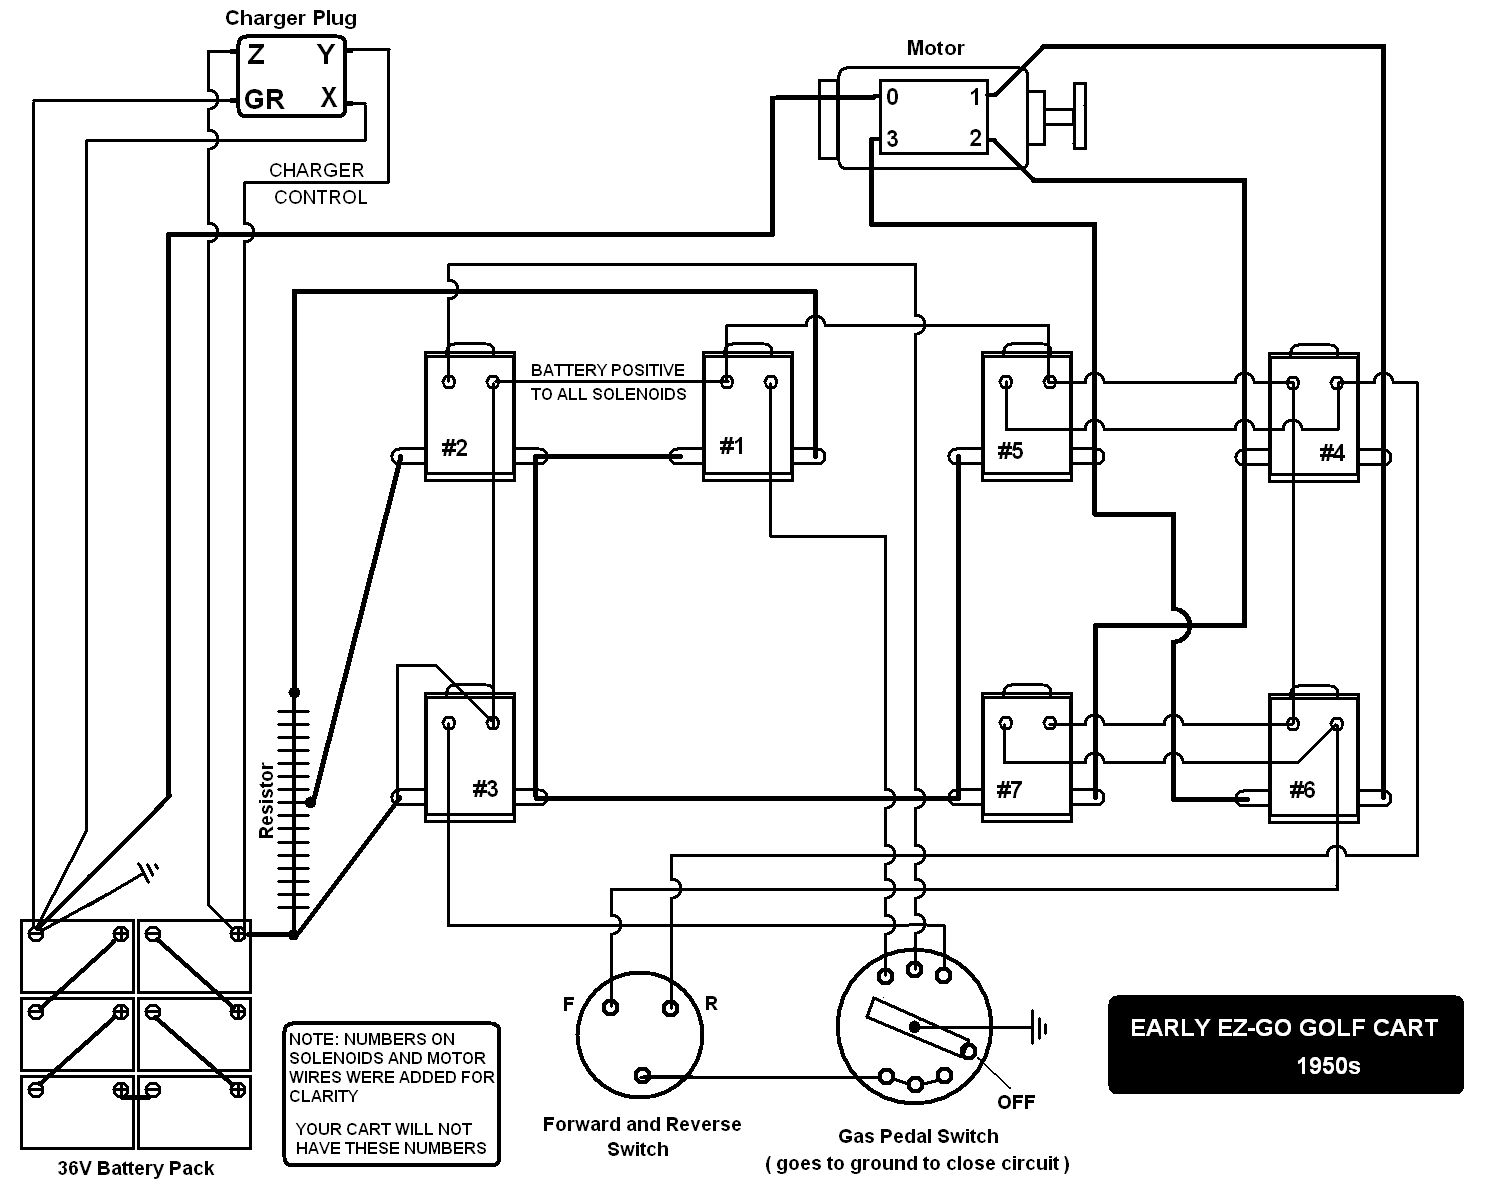 Wiring Diagram For 2001 Ez Go Golf Cart : Volt ez go wiring diagram get free image about